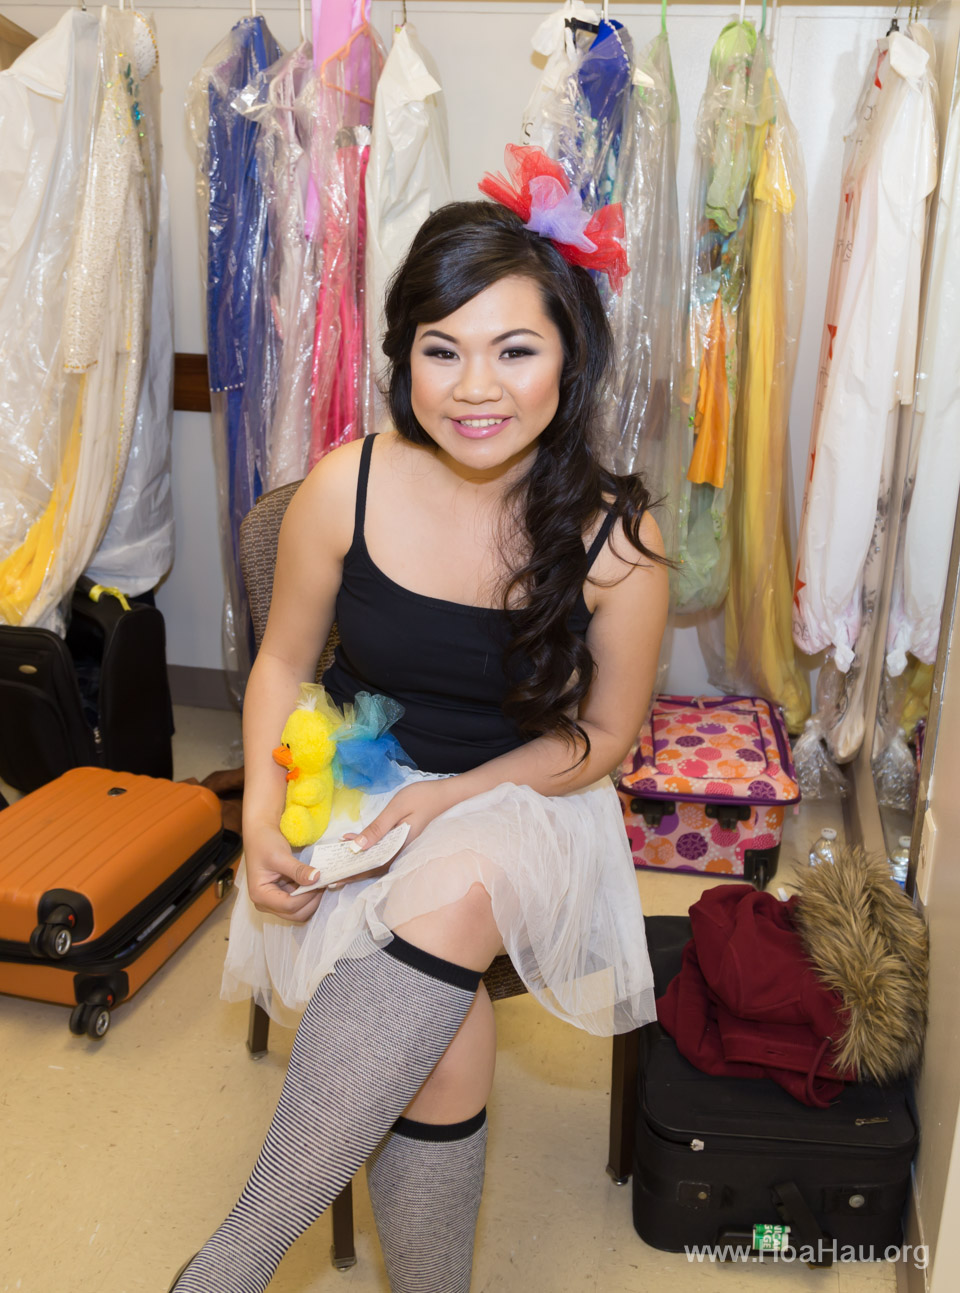 Miss Vietnam of Northern California 2014 - Hoa Hau Ao Dai Bac Cali 2014 - Behind the Scenes - Image 163